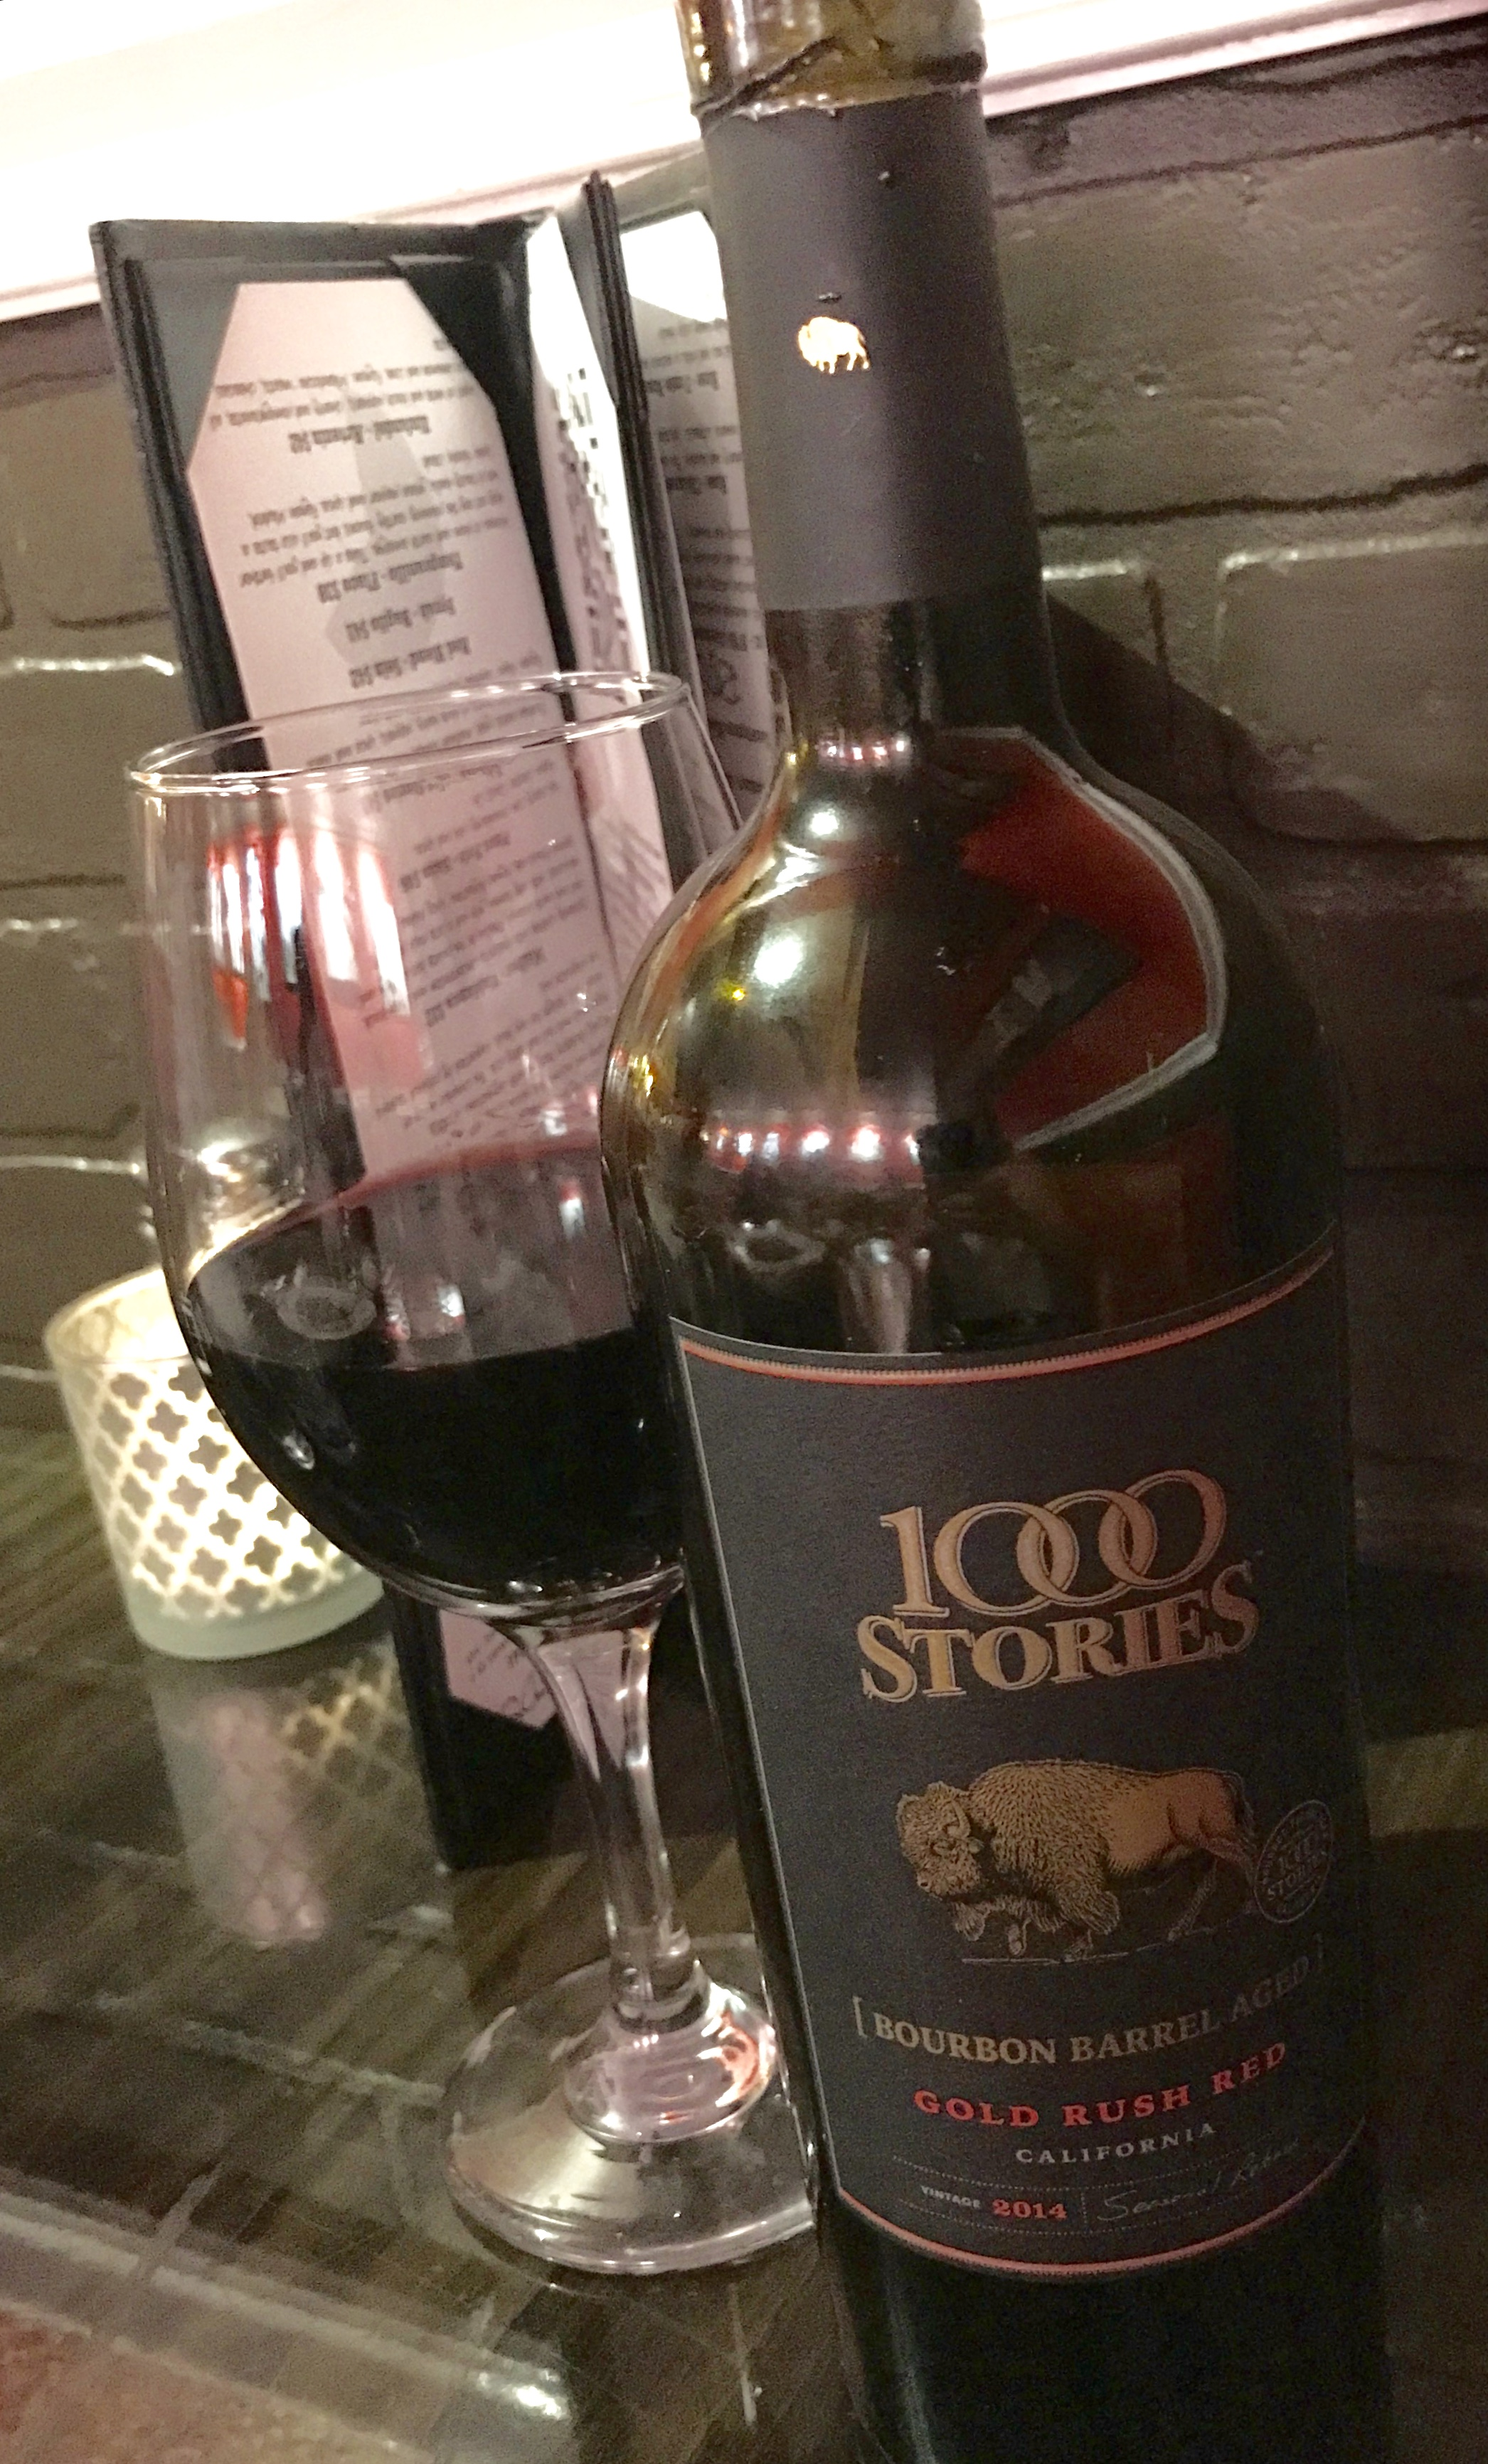 Beau n Mo's Italian Eating House 1,000 Stories Red Wine Blend